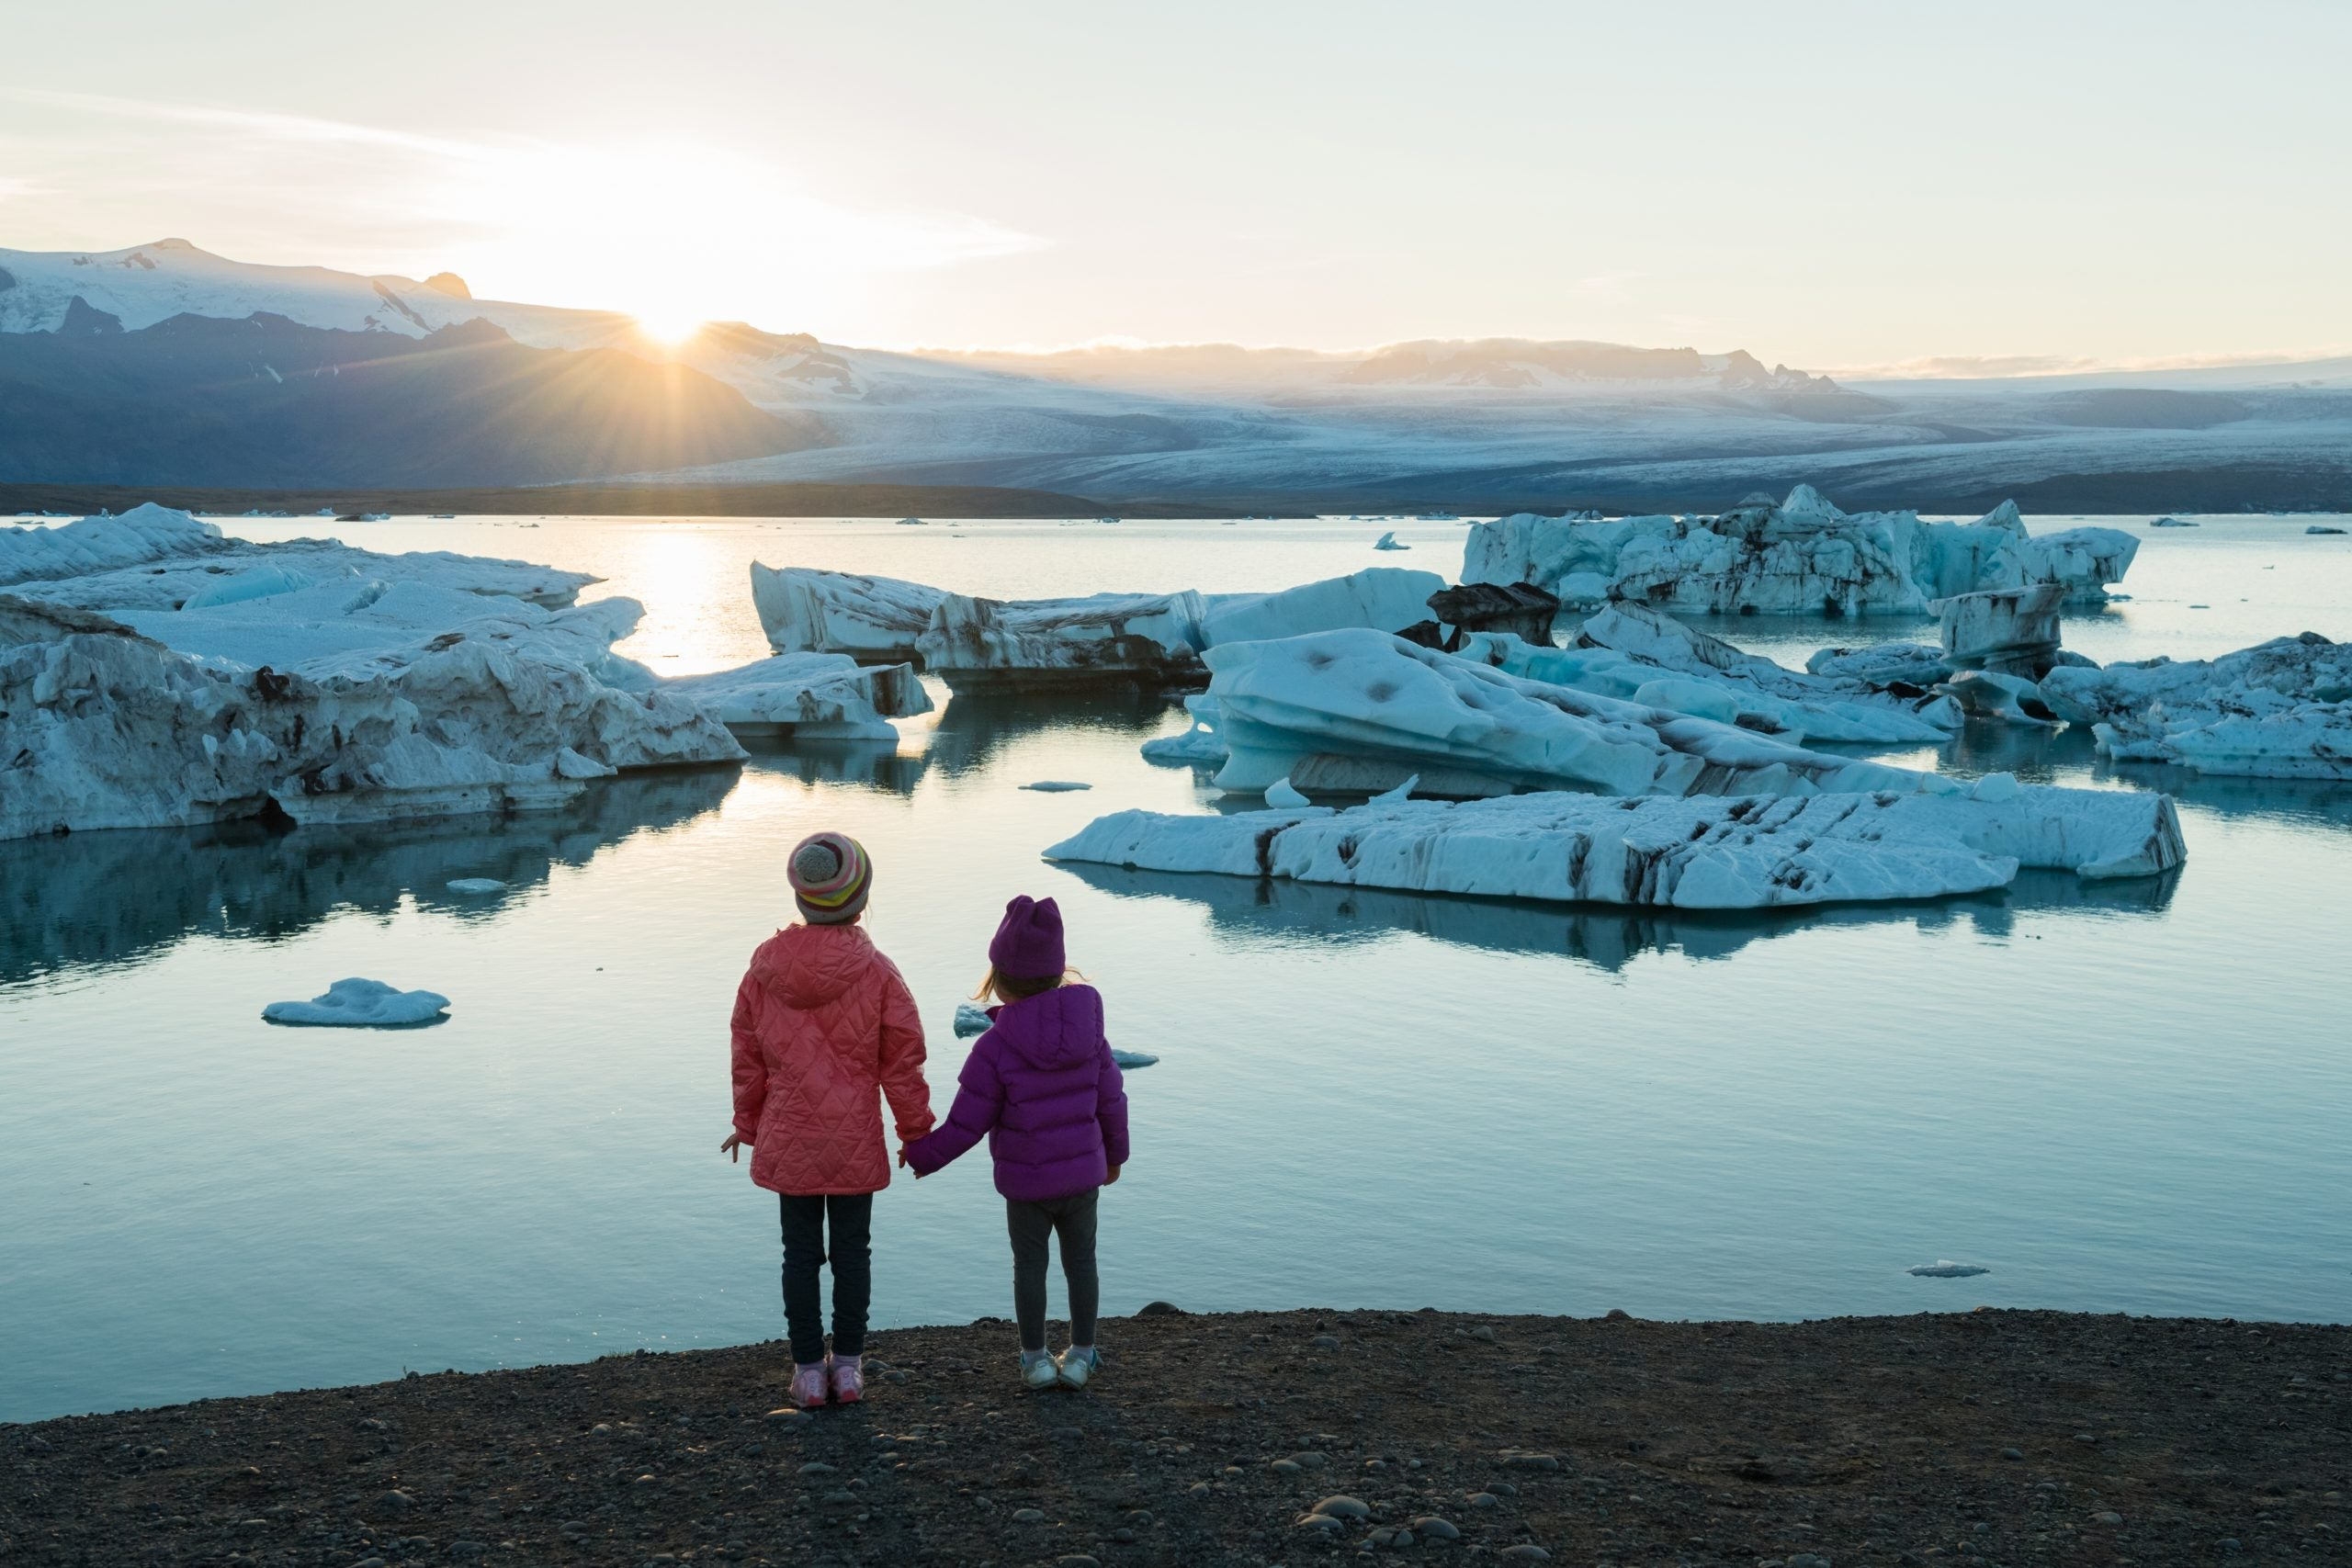 Green list alert: Great Avios availability to Iceland for the whole family with British Airways this summer - The Points Guy UK